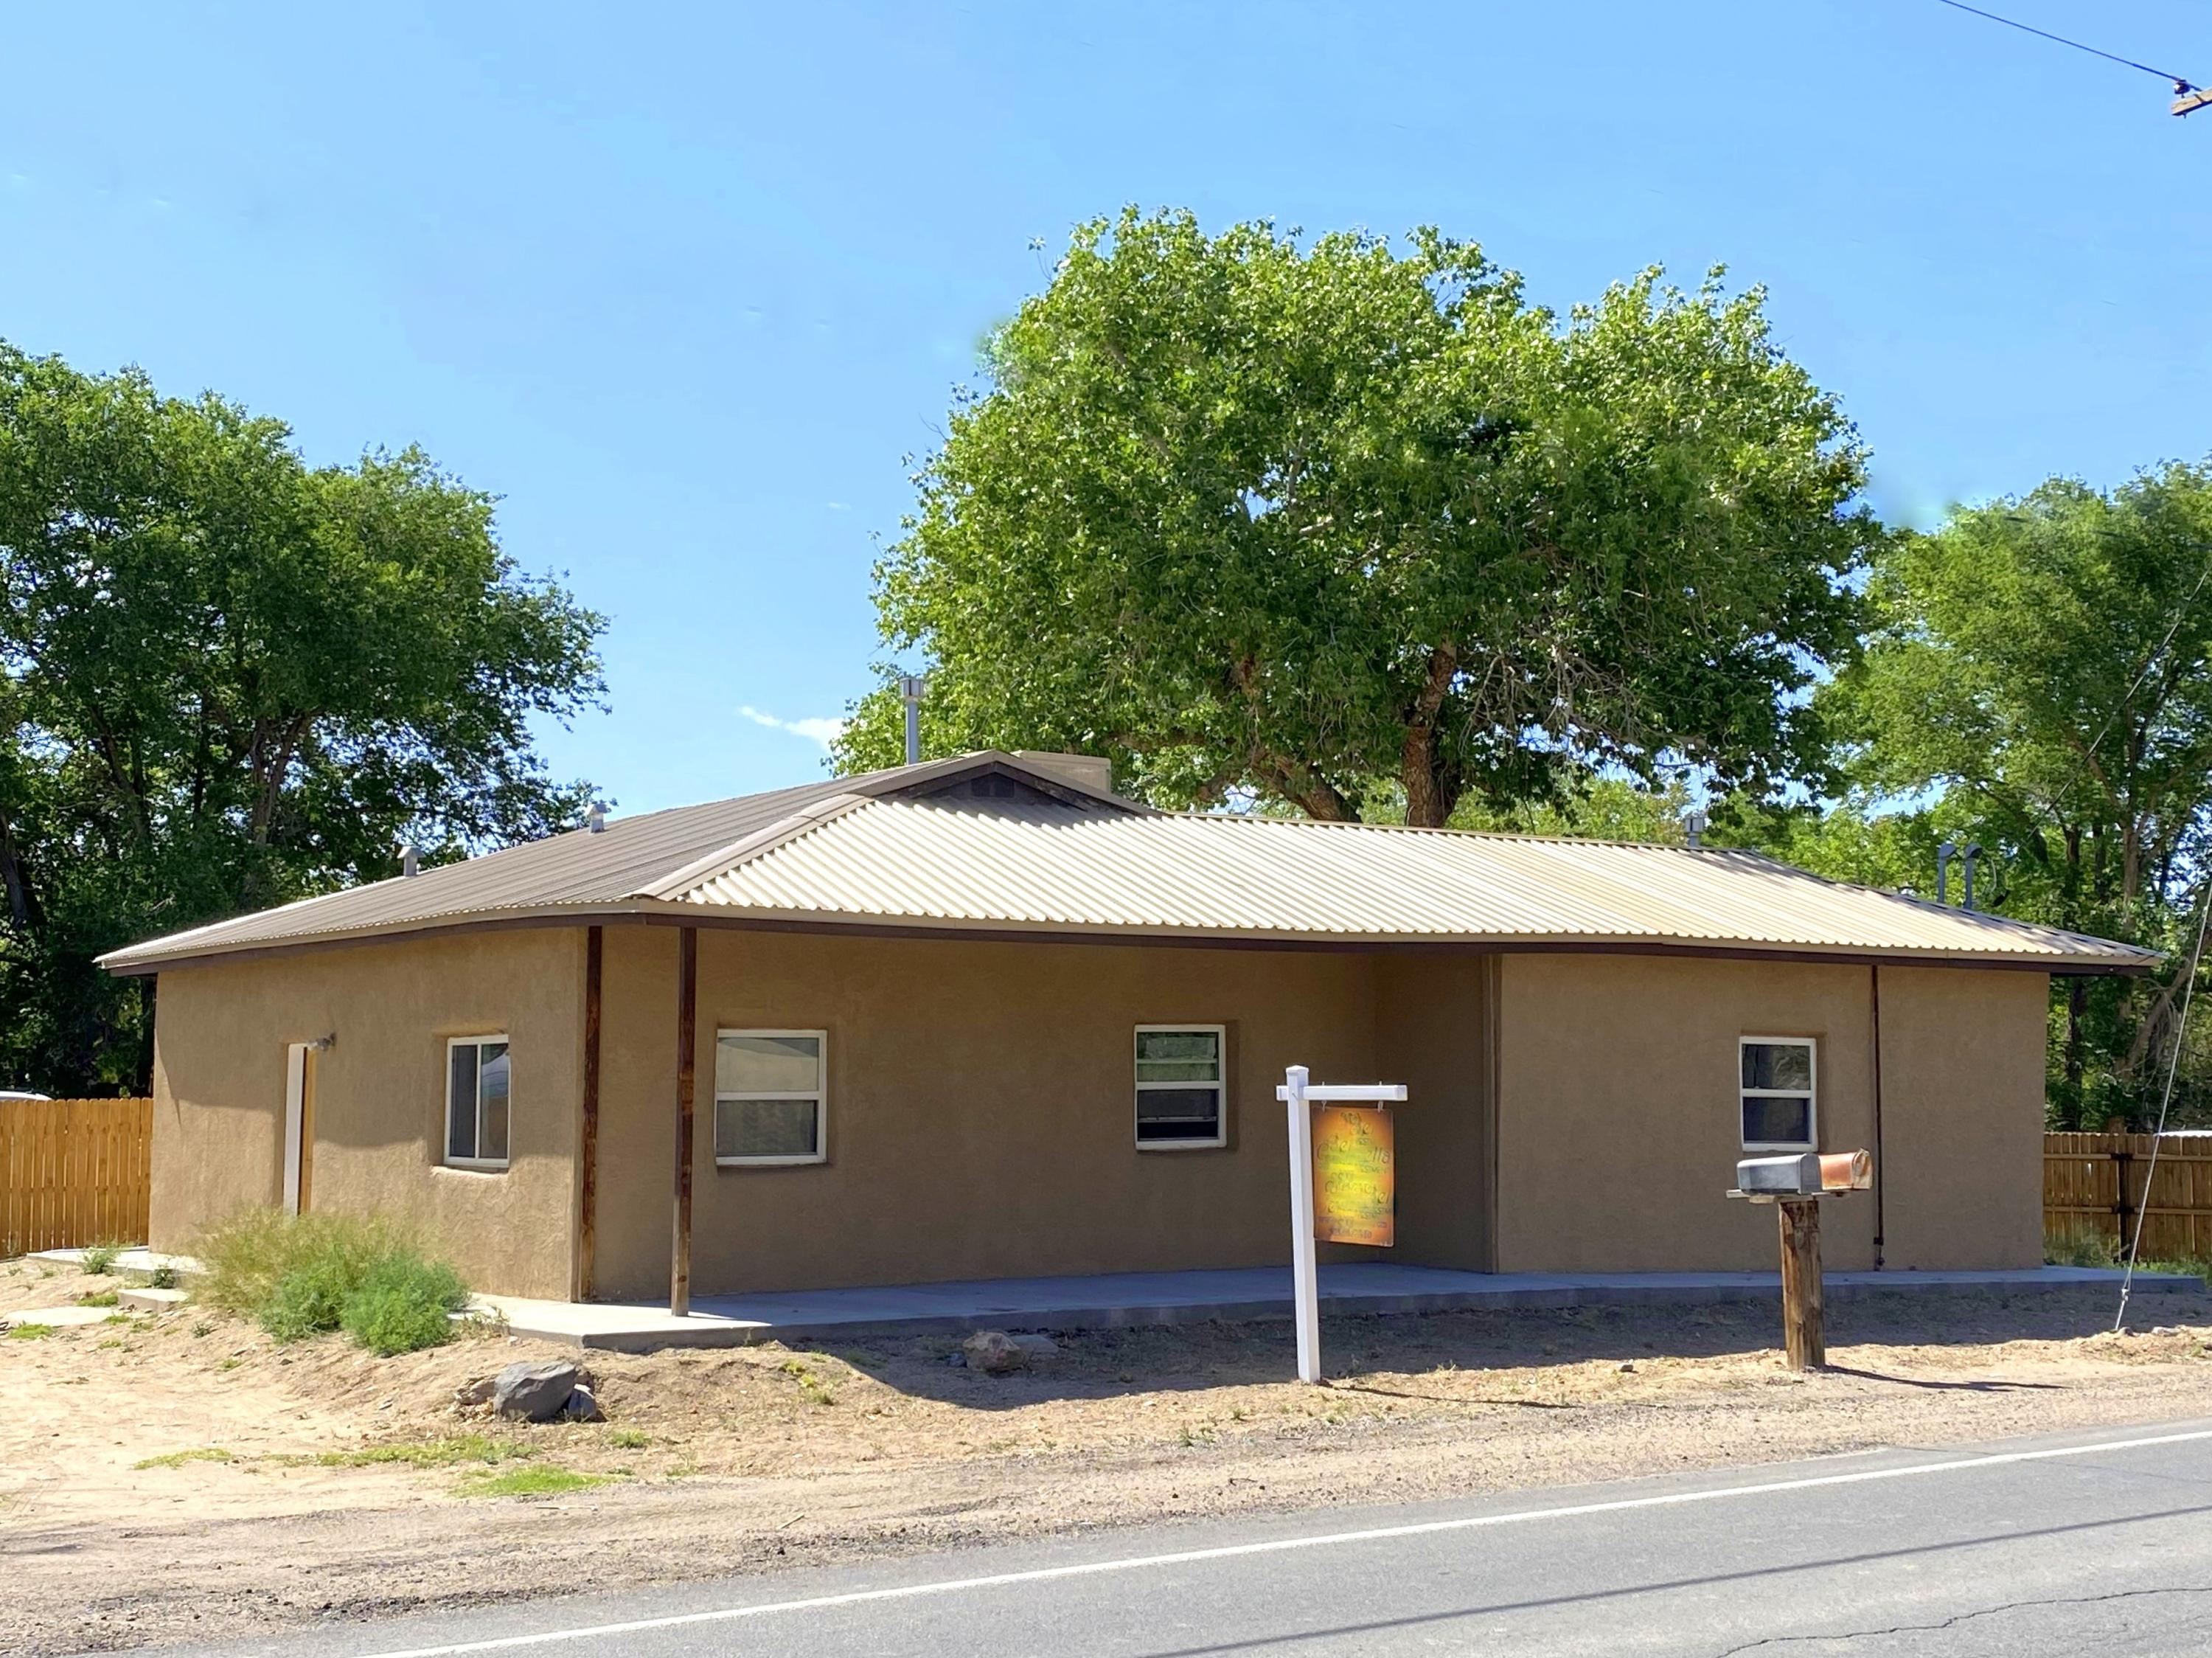 Excellent Investment Opportunity, TWO Houses for the price of one!  Located in the Beautiful Rio Grande Valley on 0.6 Acres. The main home has 3 Beds, 1 Bath, 1,140 SF frame home built in 1995.  The guest house is a 2 Bed, 1 Bath, 1,103 SF Adobe built in 1930. The walls are 18'' thick!  Wonderful for maintaining a comfortable home.  Newer metal roof on both houses in 2018.  Newer vinyl, double paned windows.  Both properties share a septic system and a shared well, installed and permitted 9/2020. Large Fenced Lot Adorned with several Mature Cottonwood Trees.